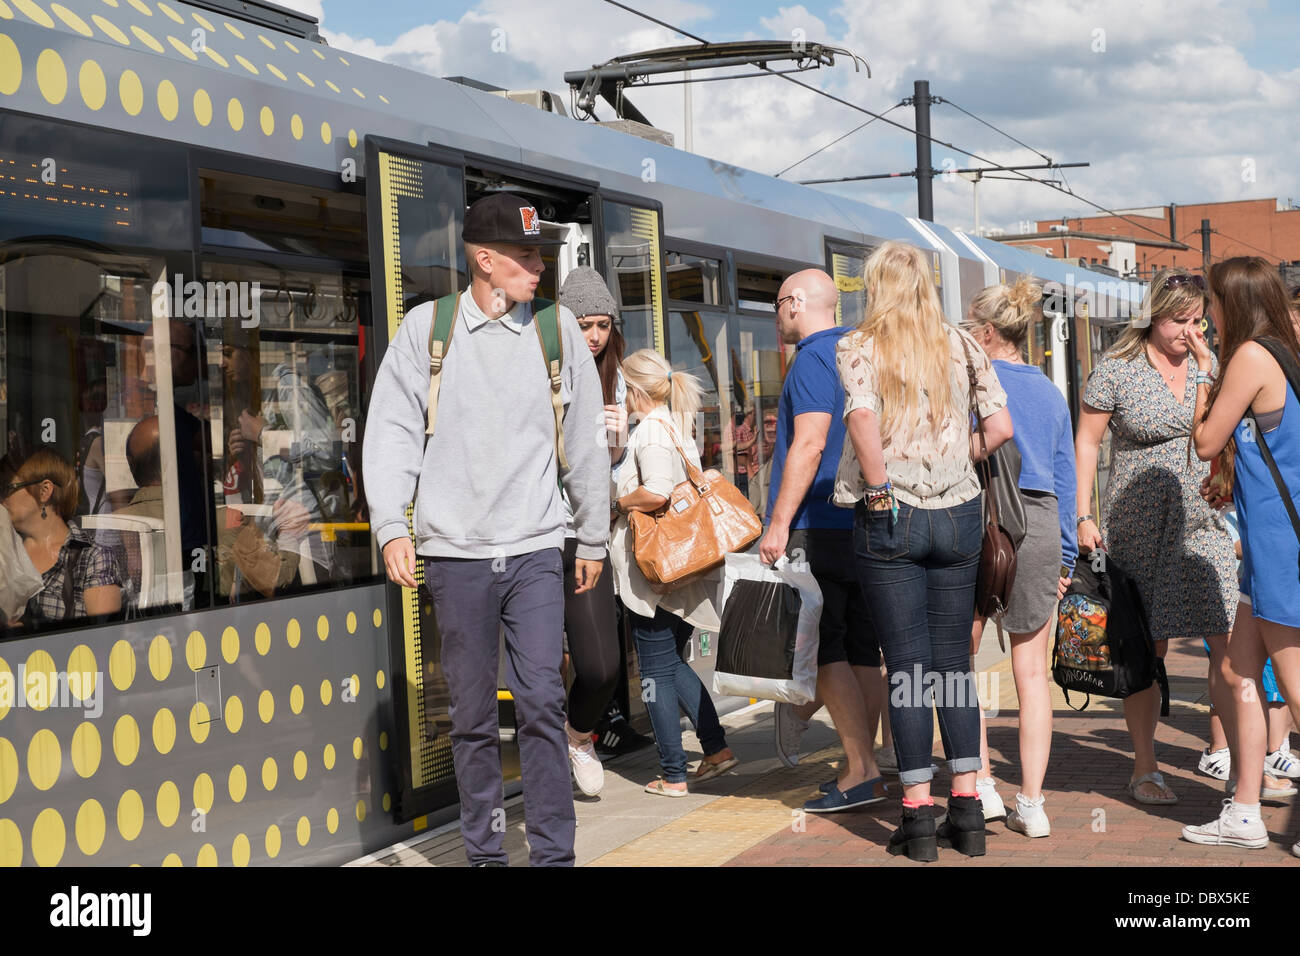 Everyday scene of passengers on crowded platform with people boarding a Metrolink tram at Deansgate-Castlefield - Stock Image